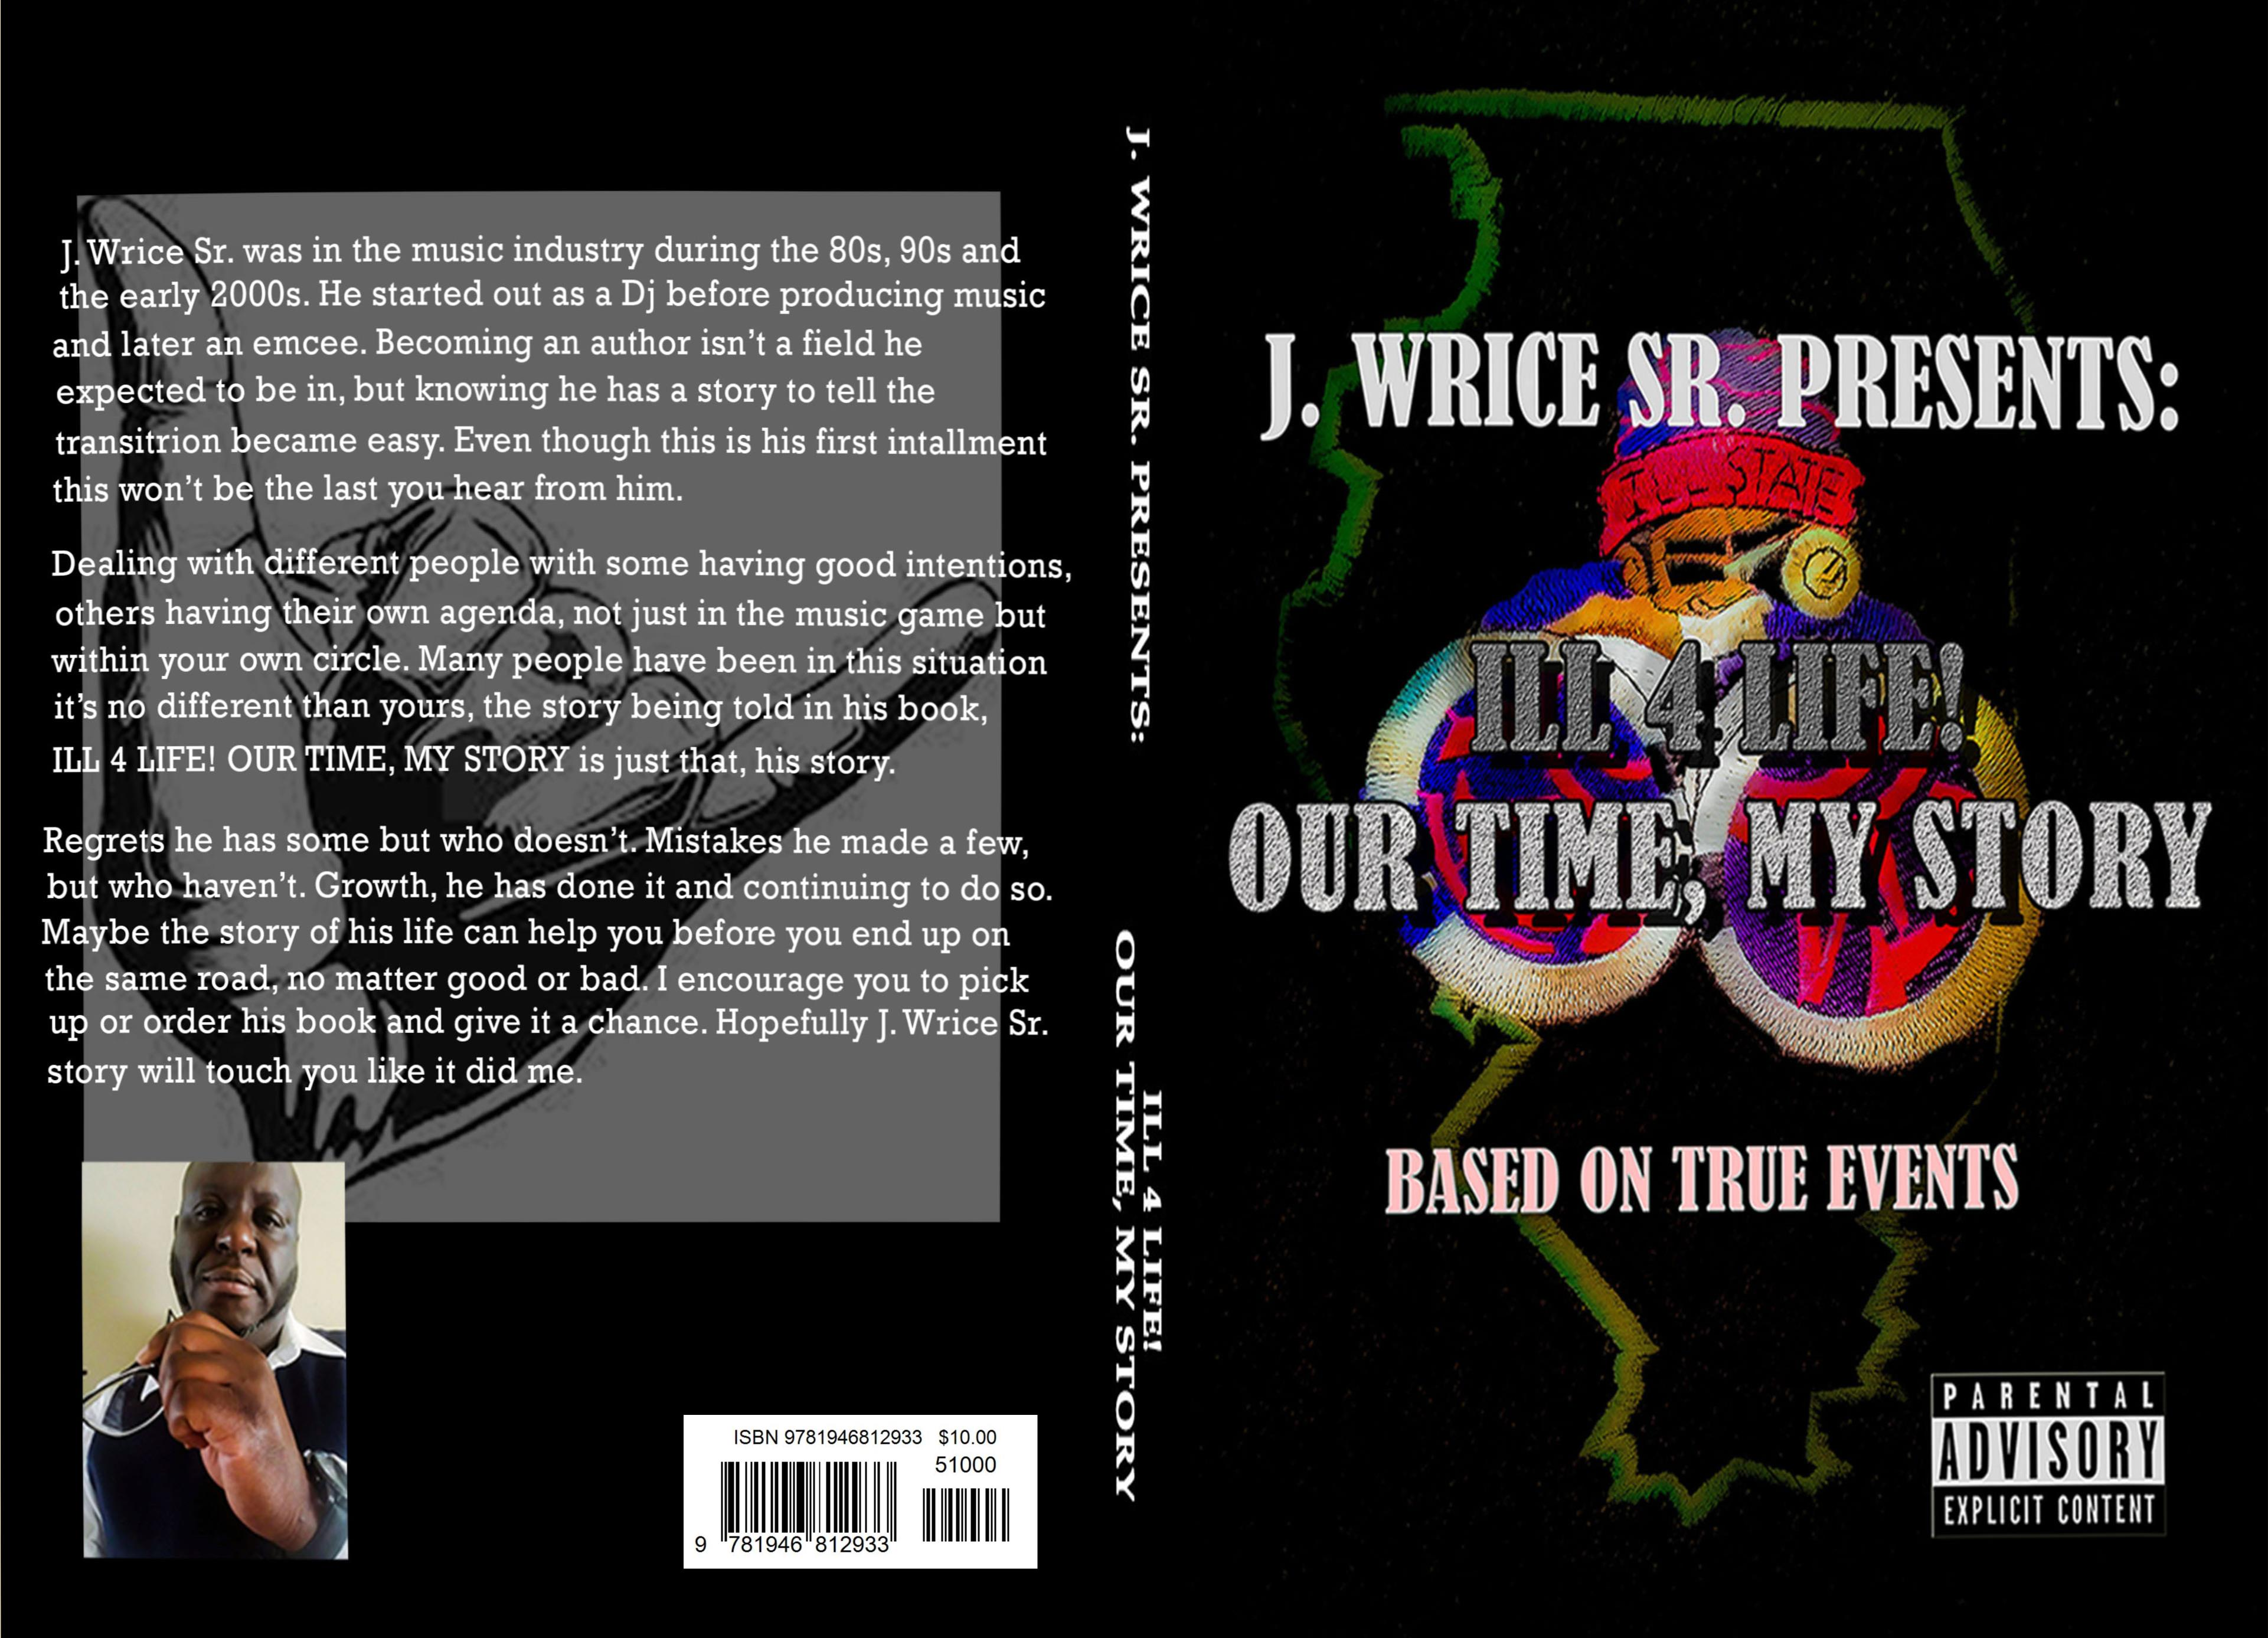 ILL 4 LIFE! OUR TIME, MY STORY cover image